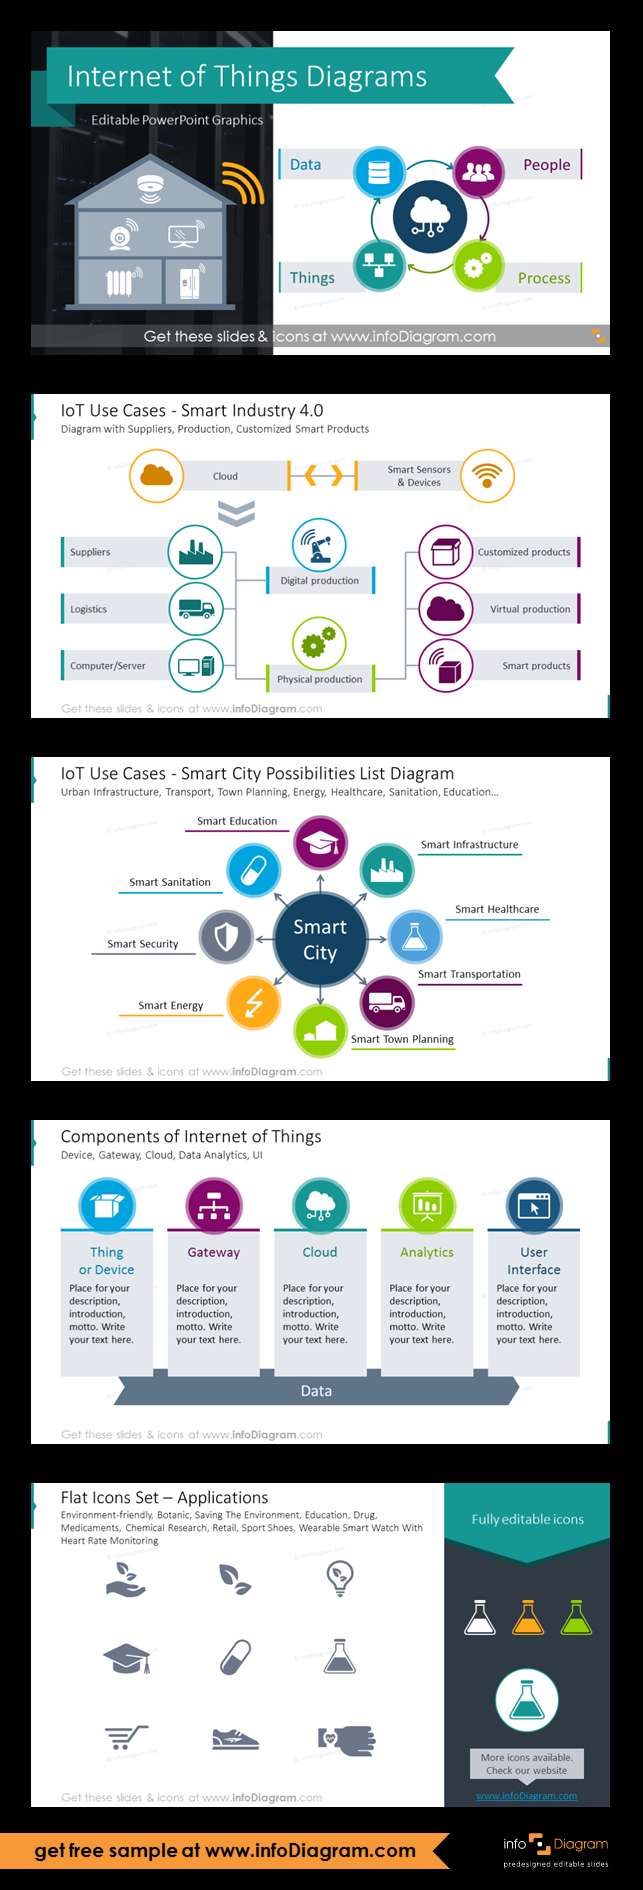 Simple Iot Diagrams To Explain Internet Of Things Network Connected Devices In Smart Home Industry 4 0 Applications Powerpoint Editable Iot What Is Internet Smart City